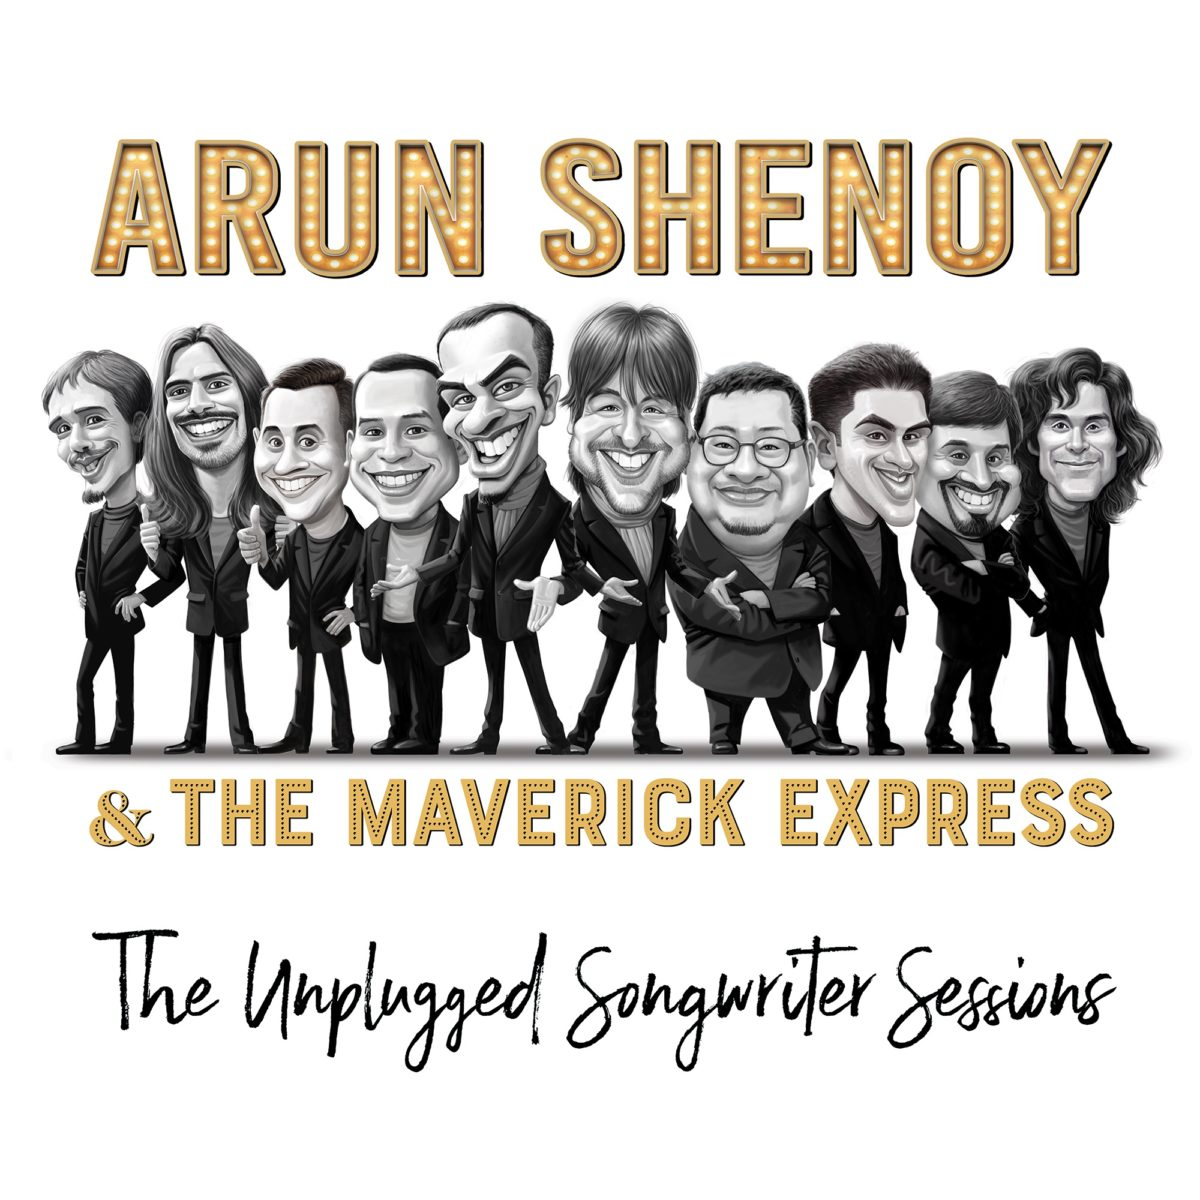 Arun-Shenoy-and-The-Maverick-Express-The-Unplugged-Songwriter-Sessions_Digital-Album-Cover-2000px